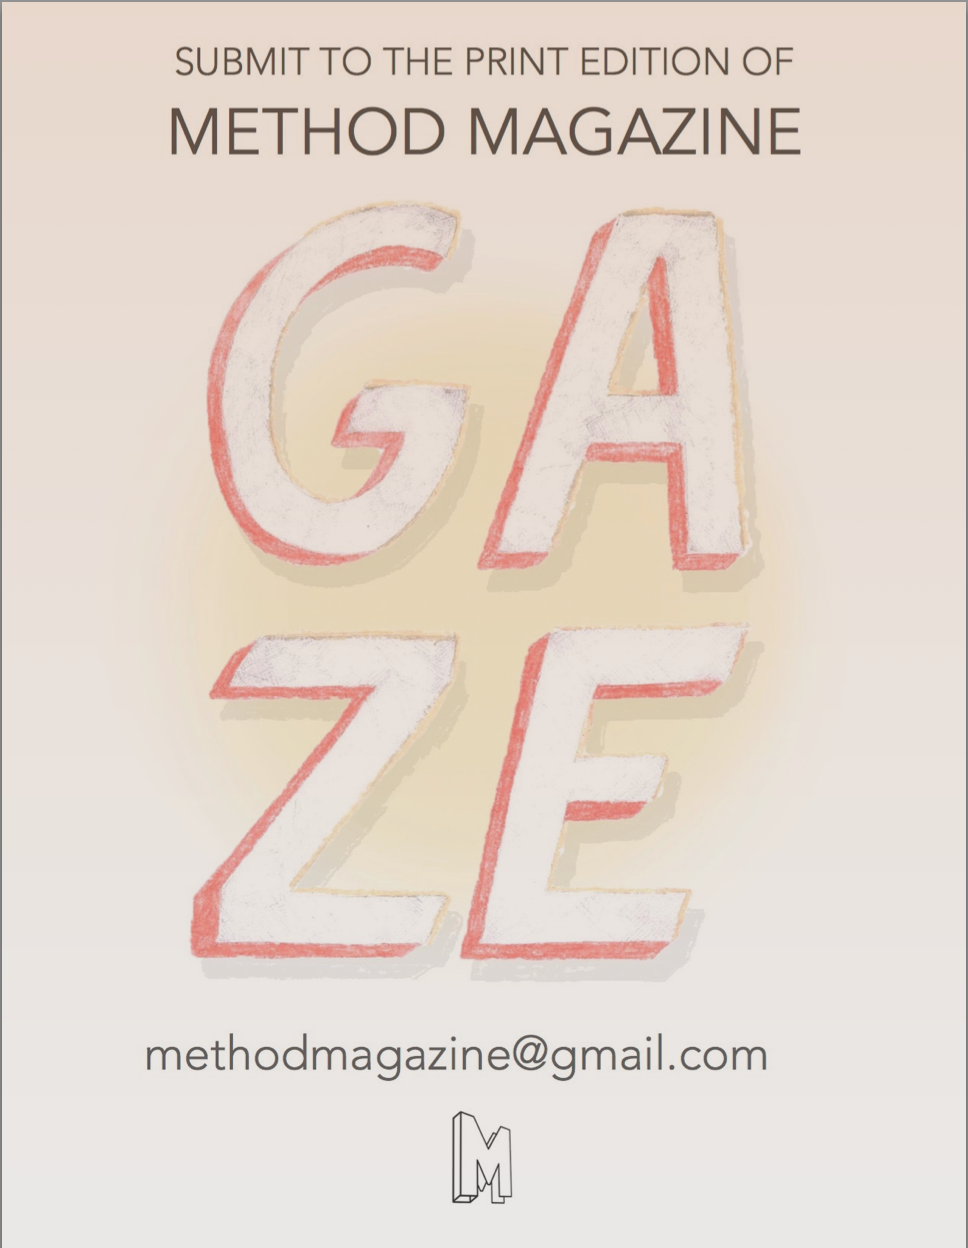 SUBMIT TO METHOD'S PRINT EDITION!